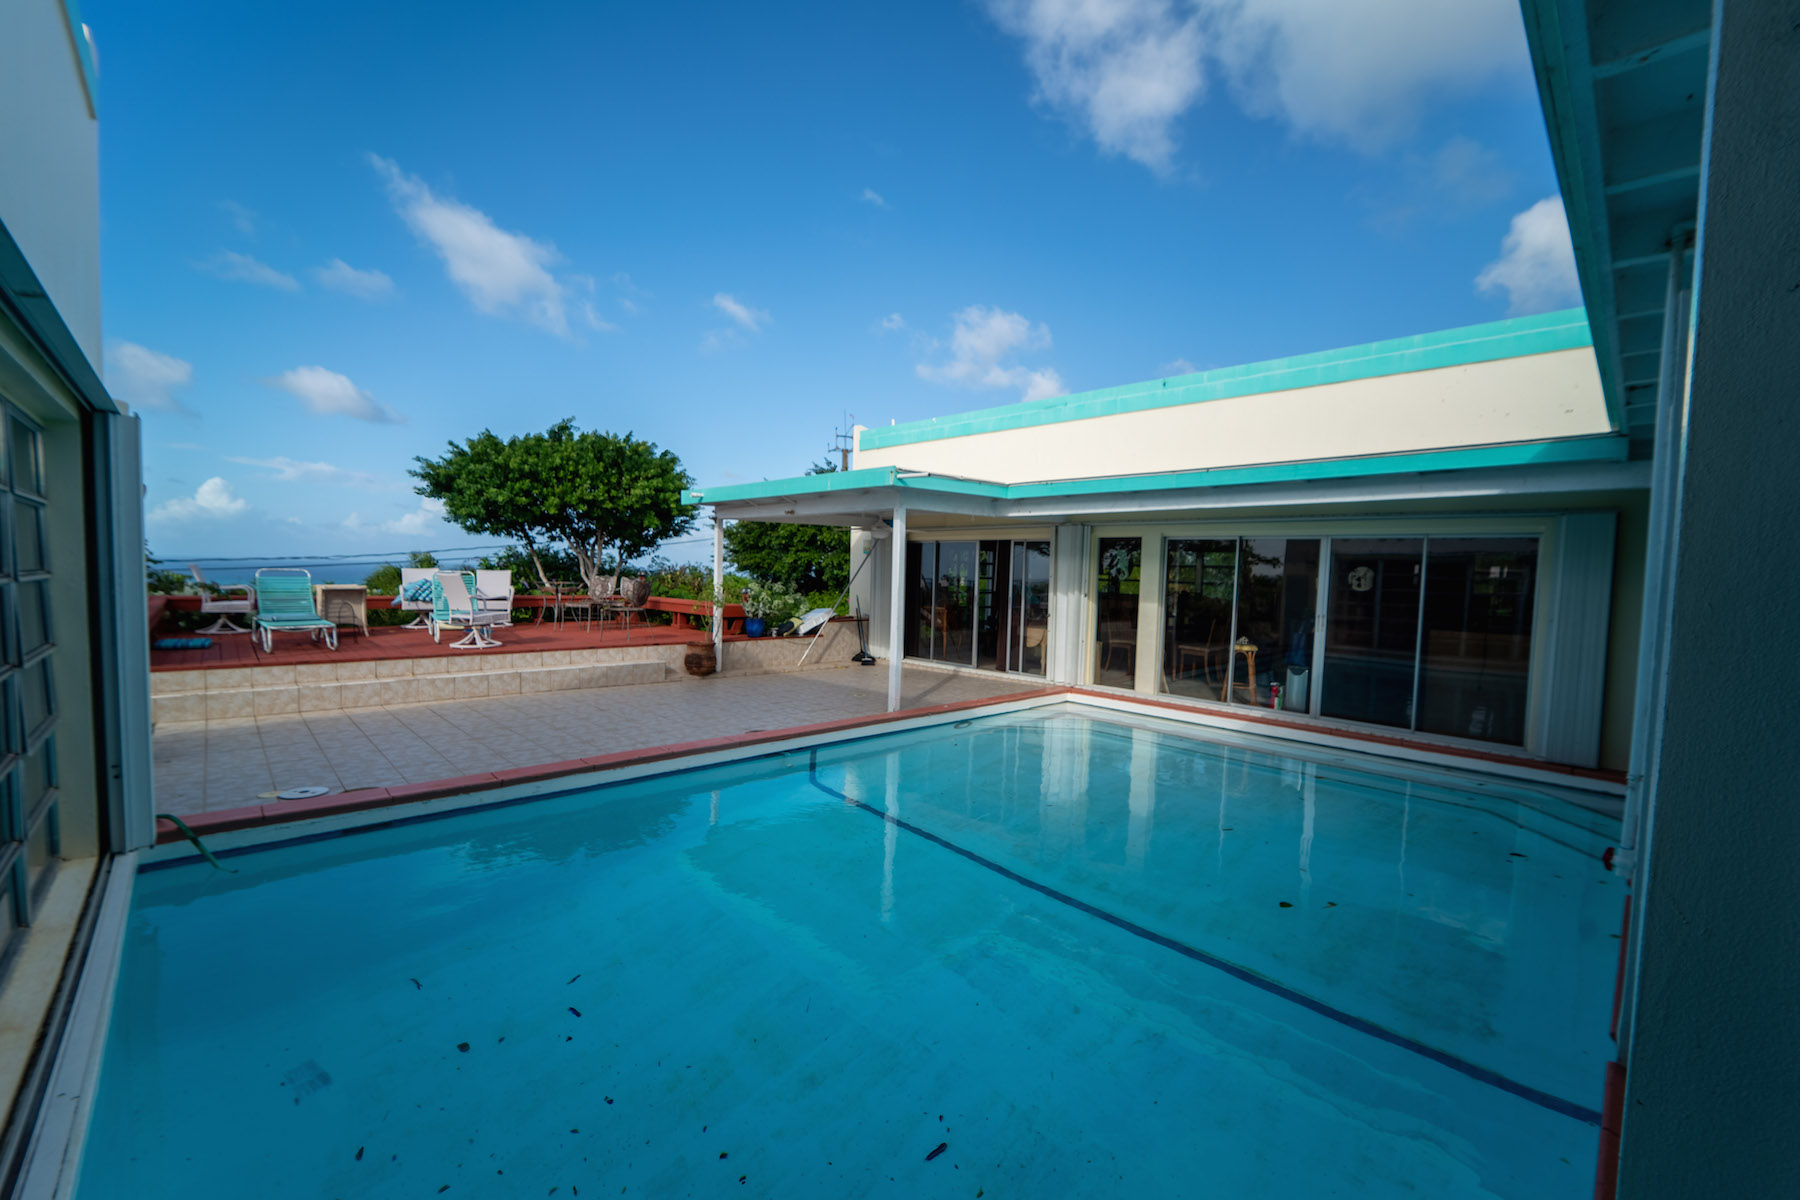 Multi-Family Homes for Sale at 26 Marienhoj St Croix, Virgin Islands 00820 United States Virgin Islands